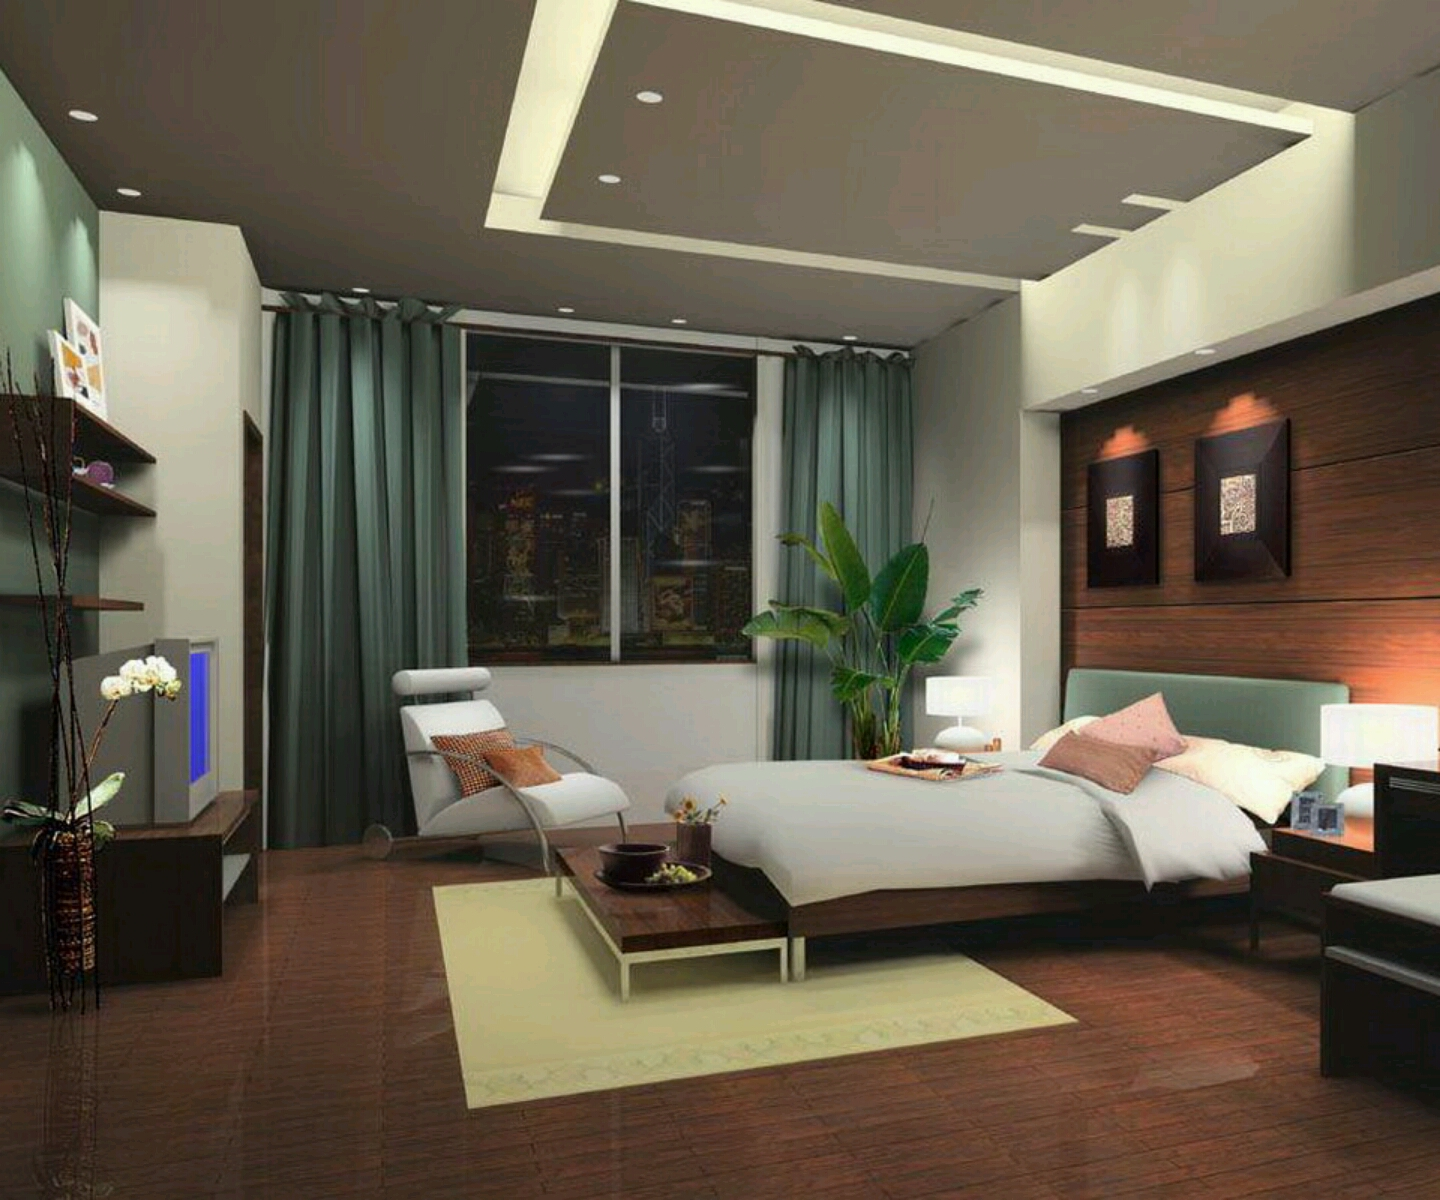 new home designs latest modern bedrooms designs best ideas ForNew House Bedroom Ideas